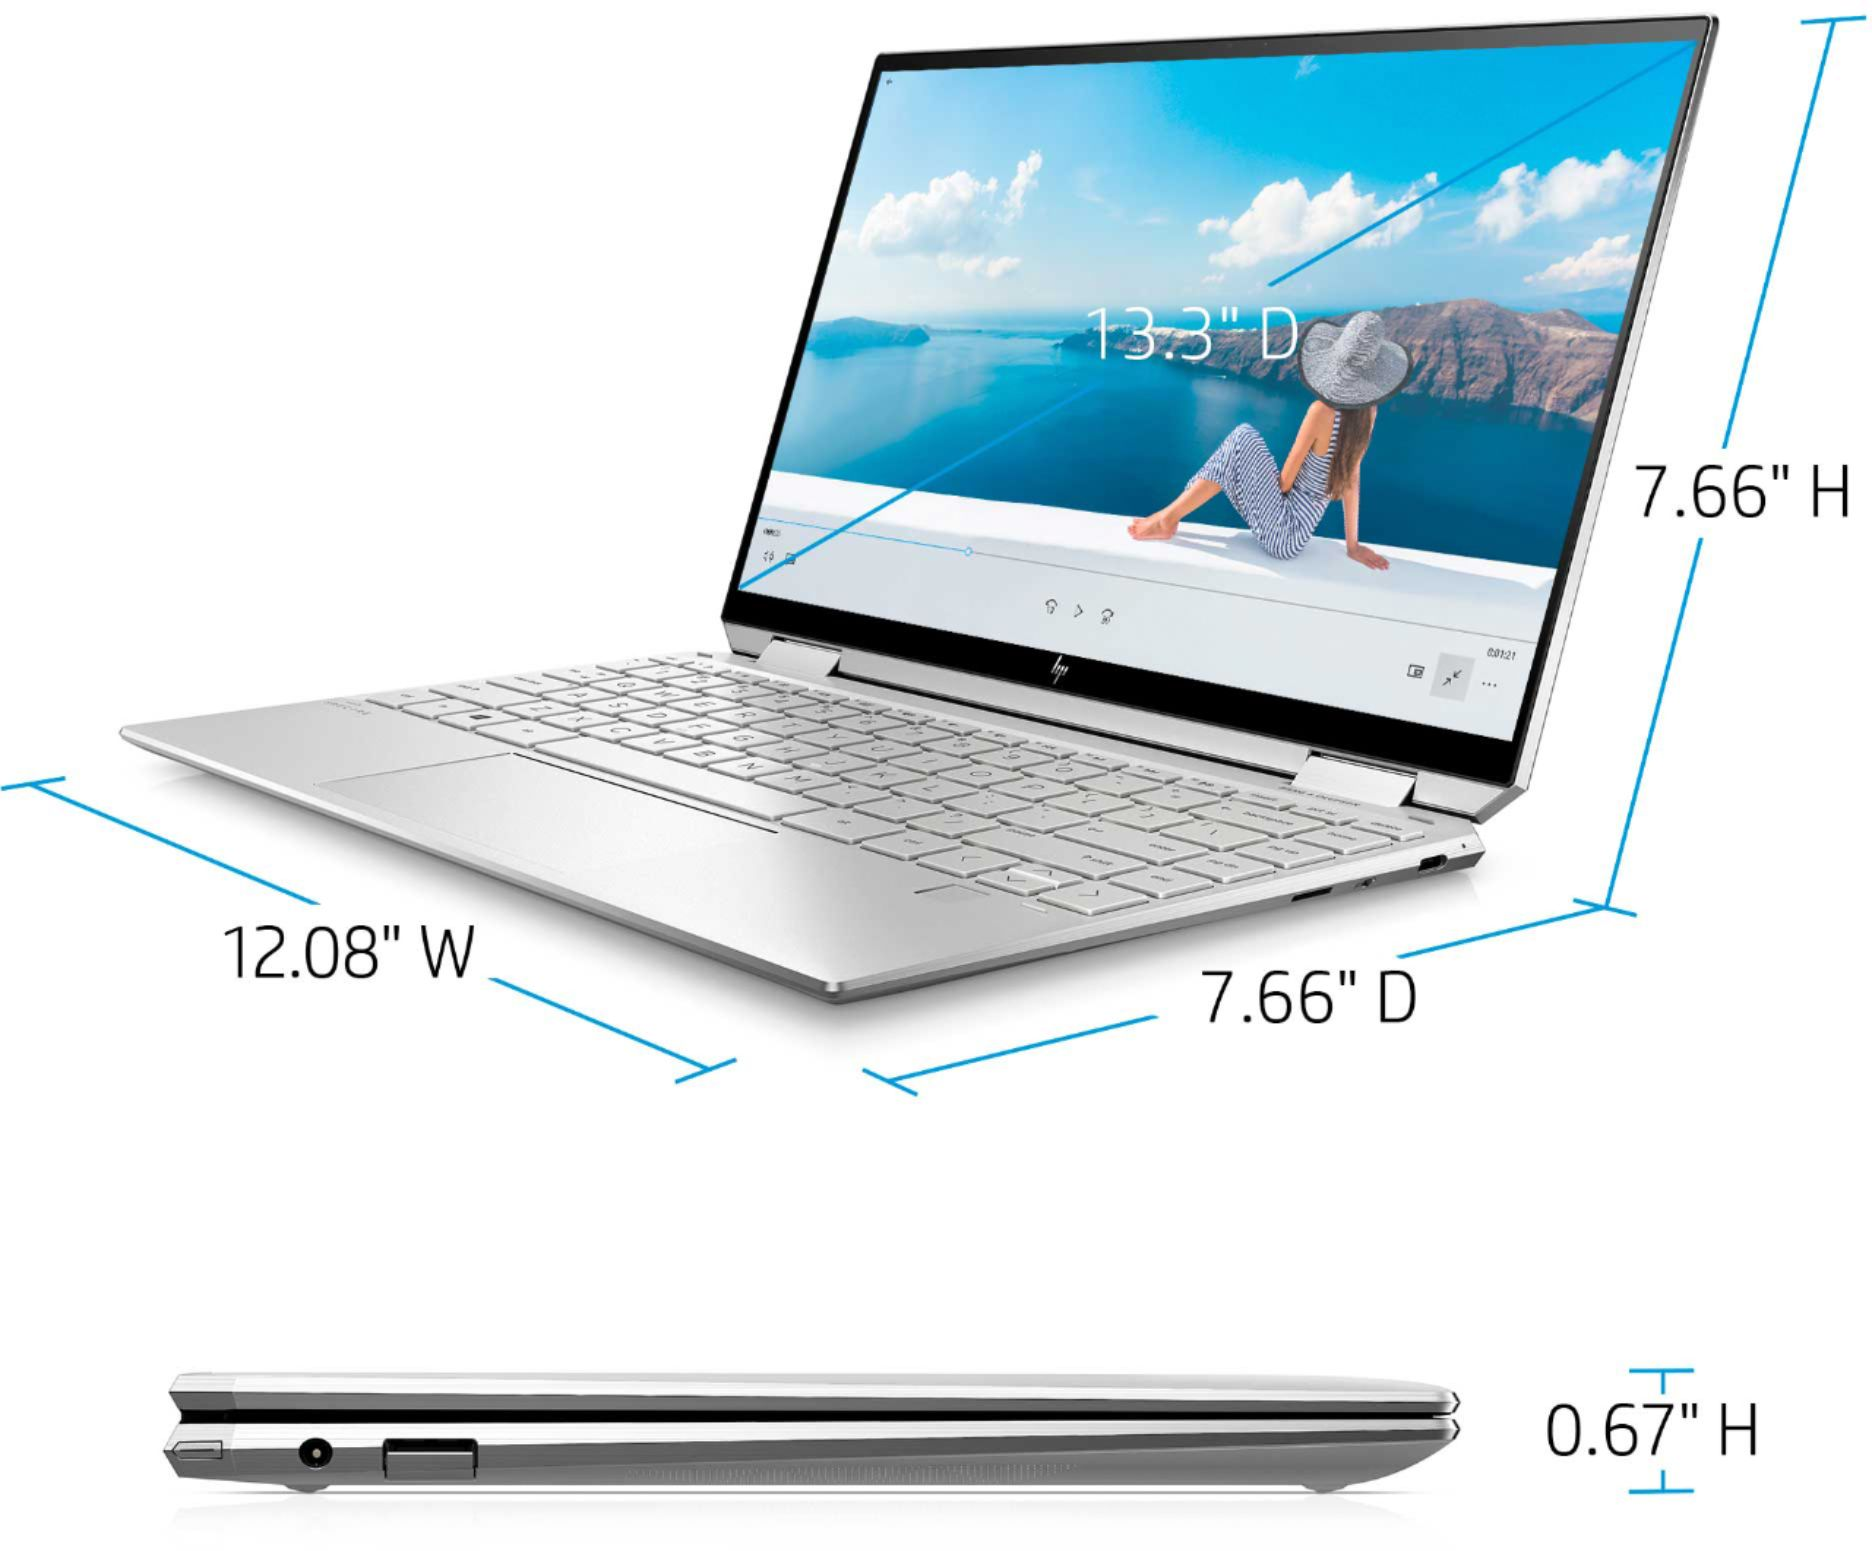 """Alt View Zoom 12. HP - Spectre x360 2-in-1 13.3"""" 4K Ultra HD Touch-Screen Laptop - Intel Core i5 - 8GB Memory - 256GB SSD - Natural Silver."""